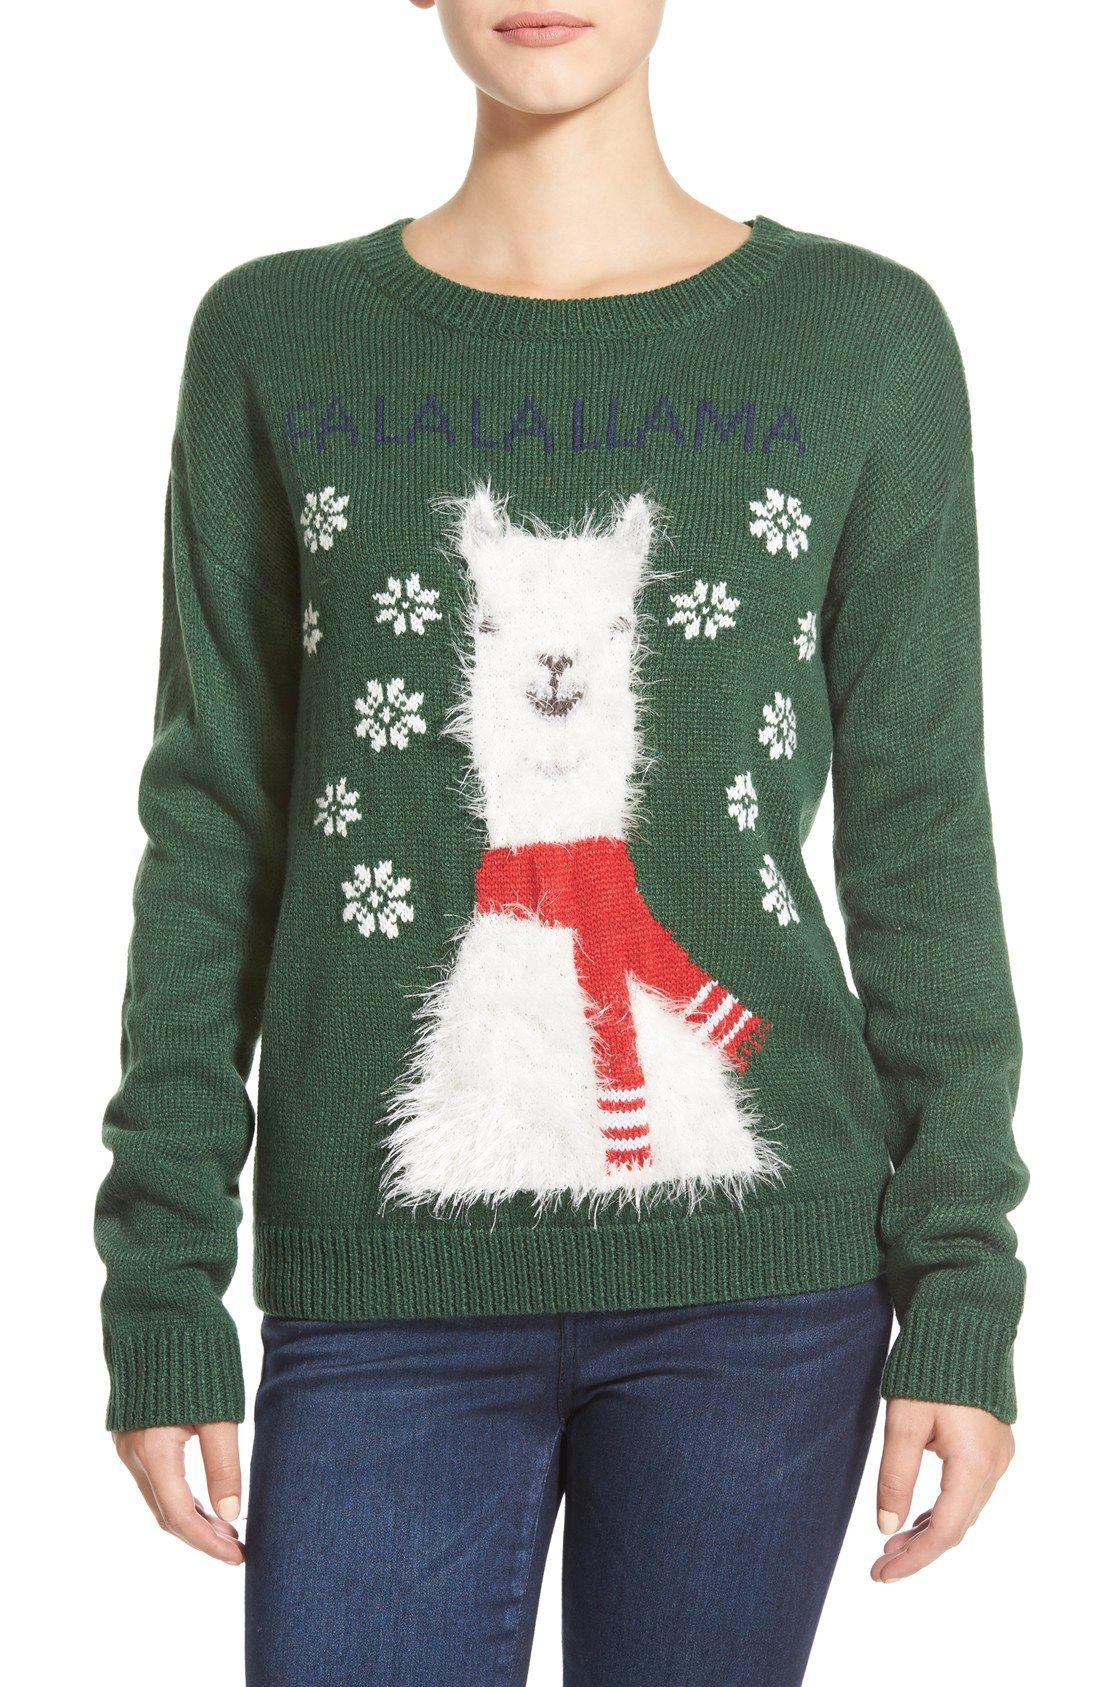 Llama Christmas Sweater.Pin On Holidays